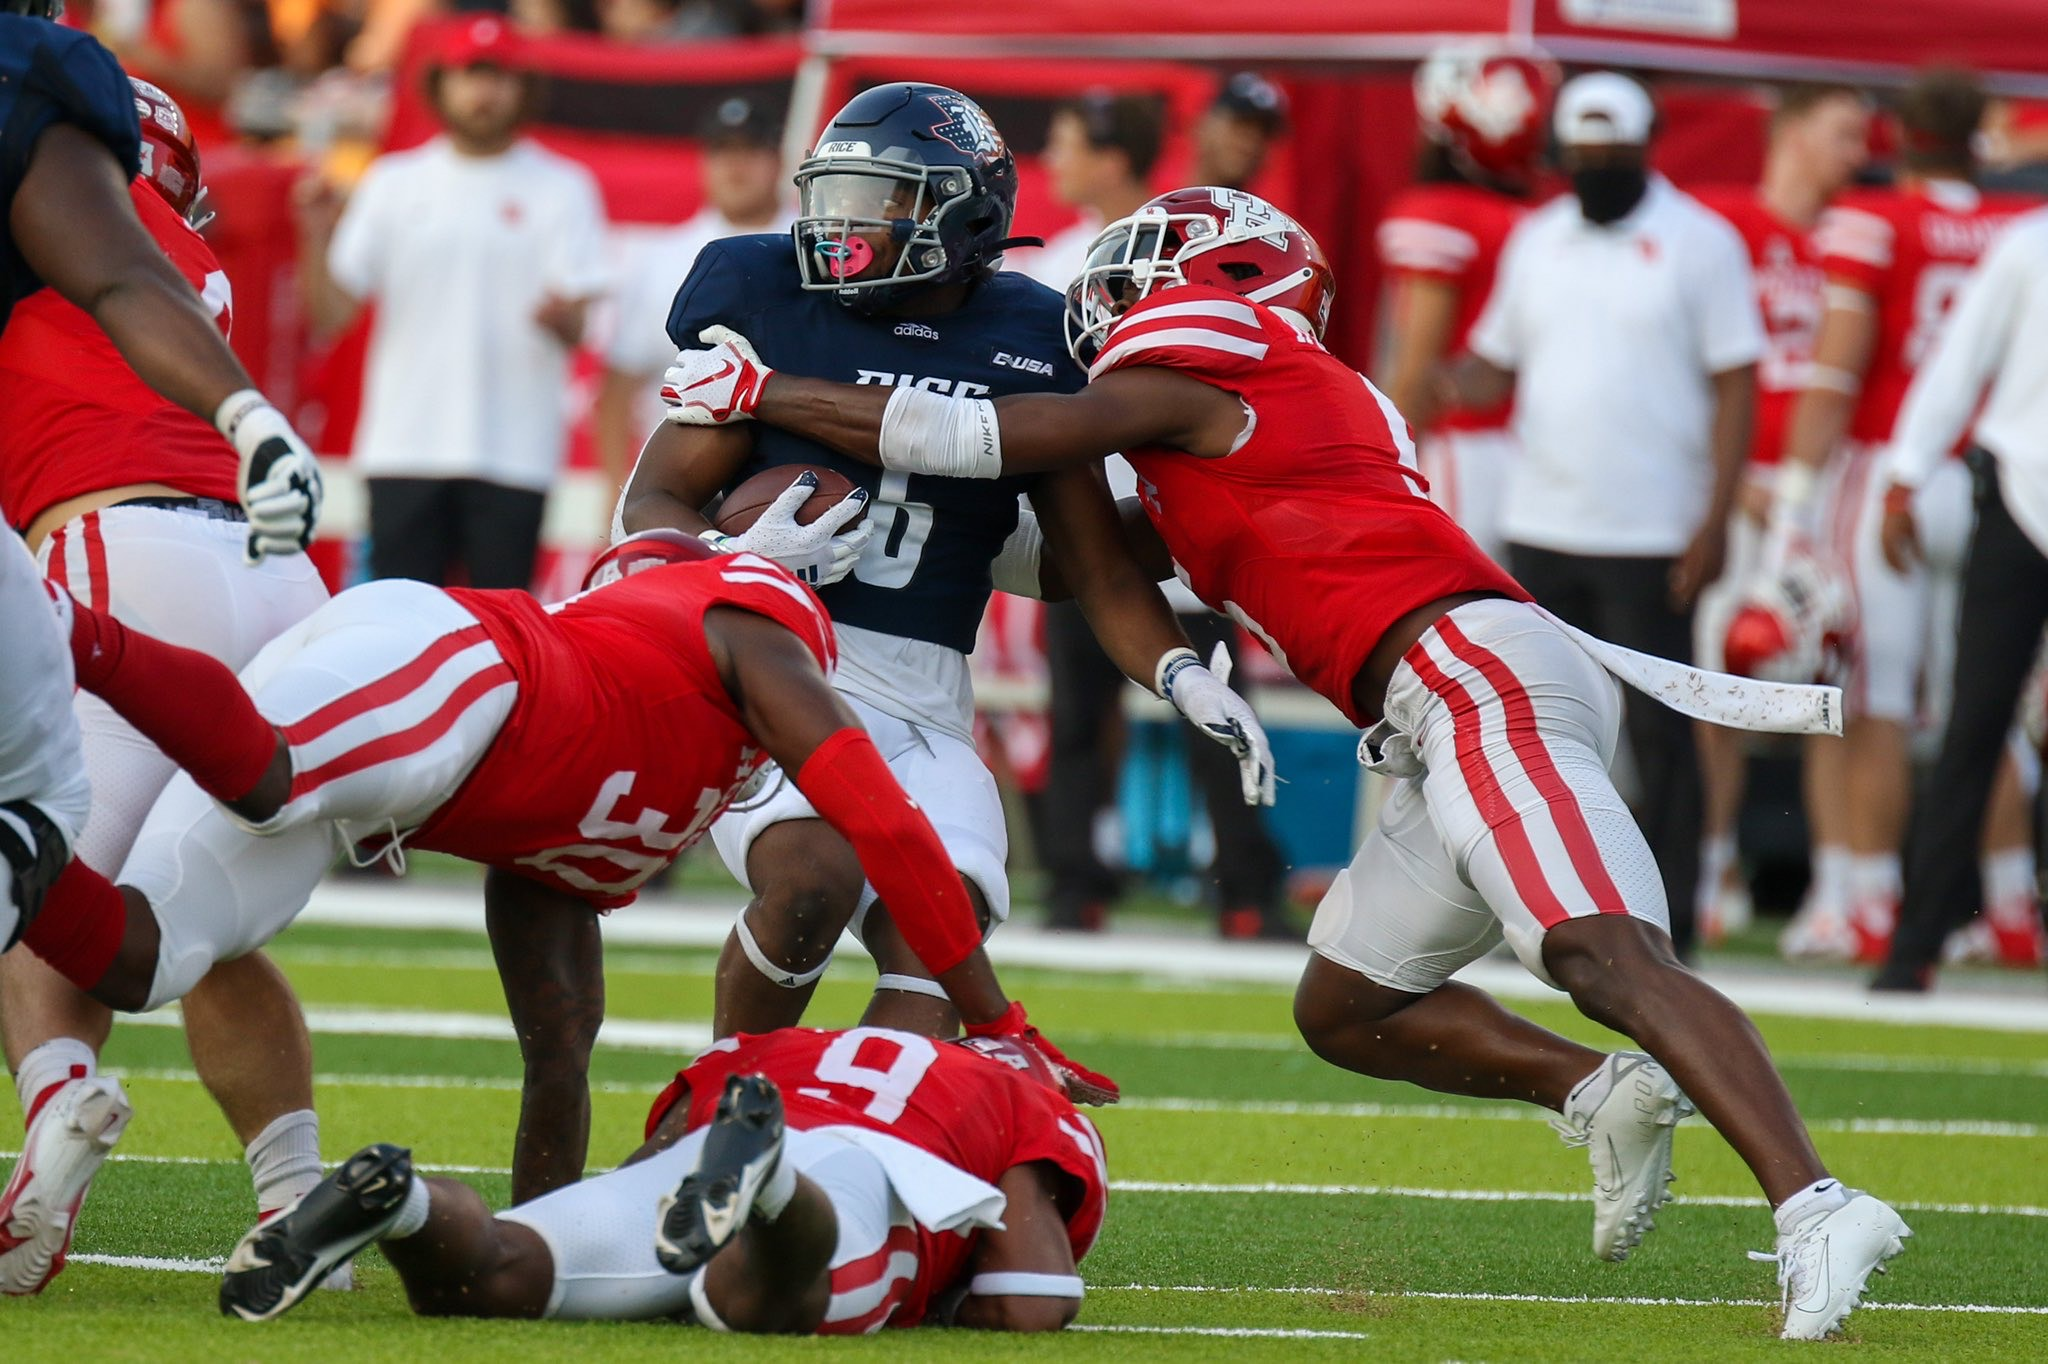 What to Watch: UH looks to win consecutive games for first time under Holgorsen